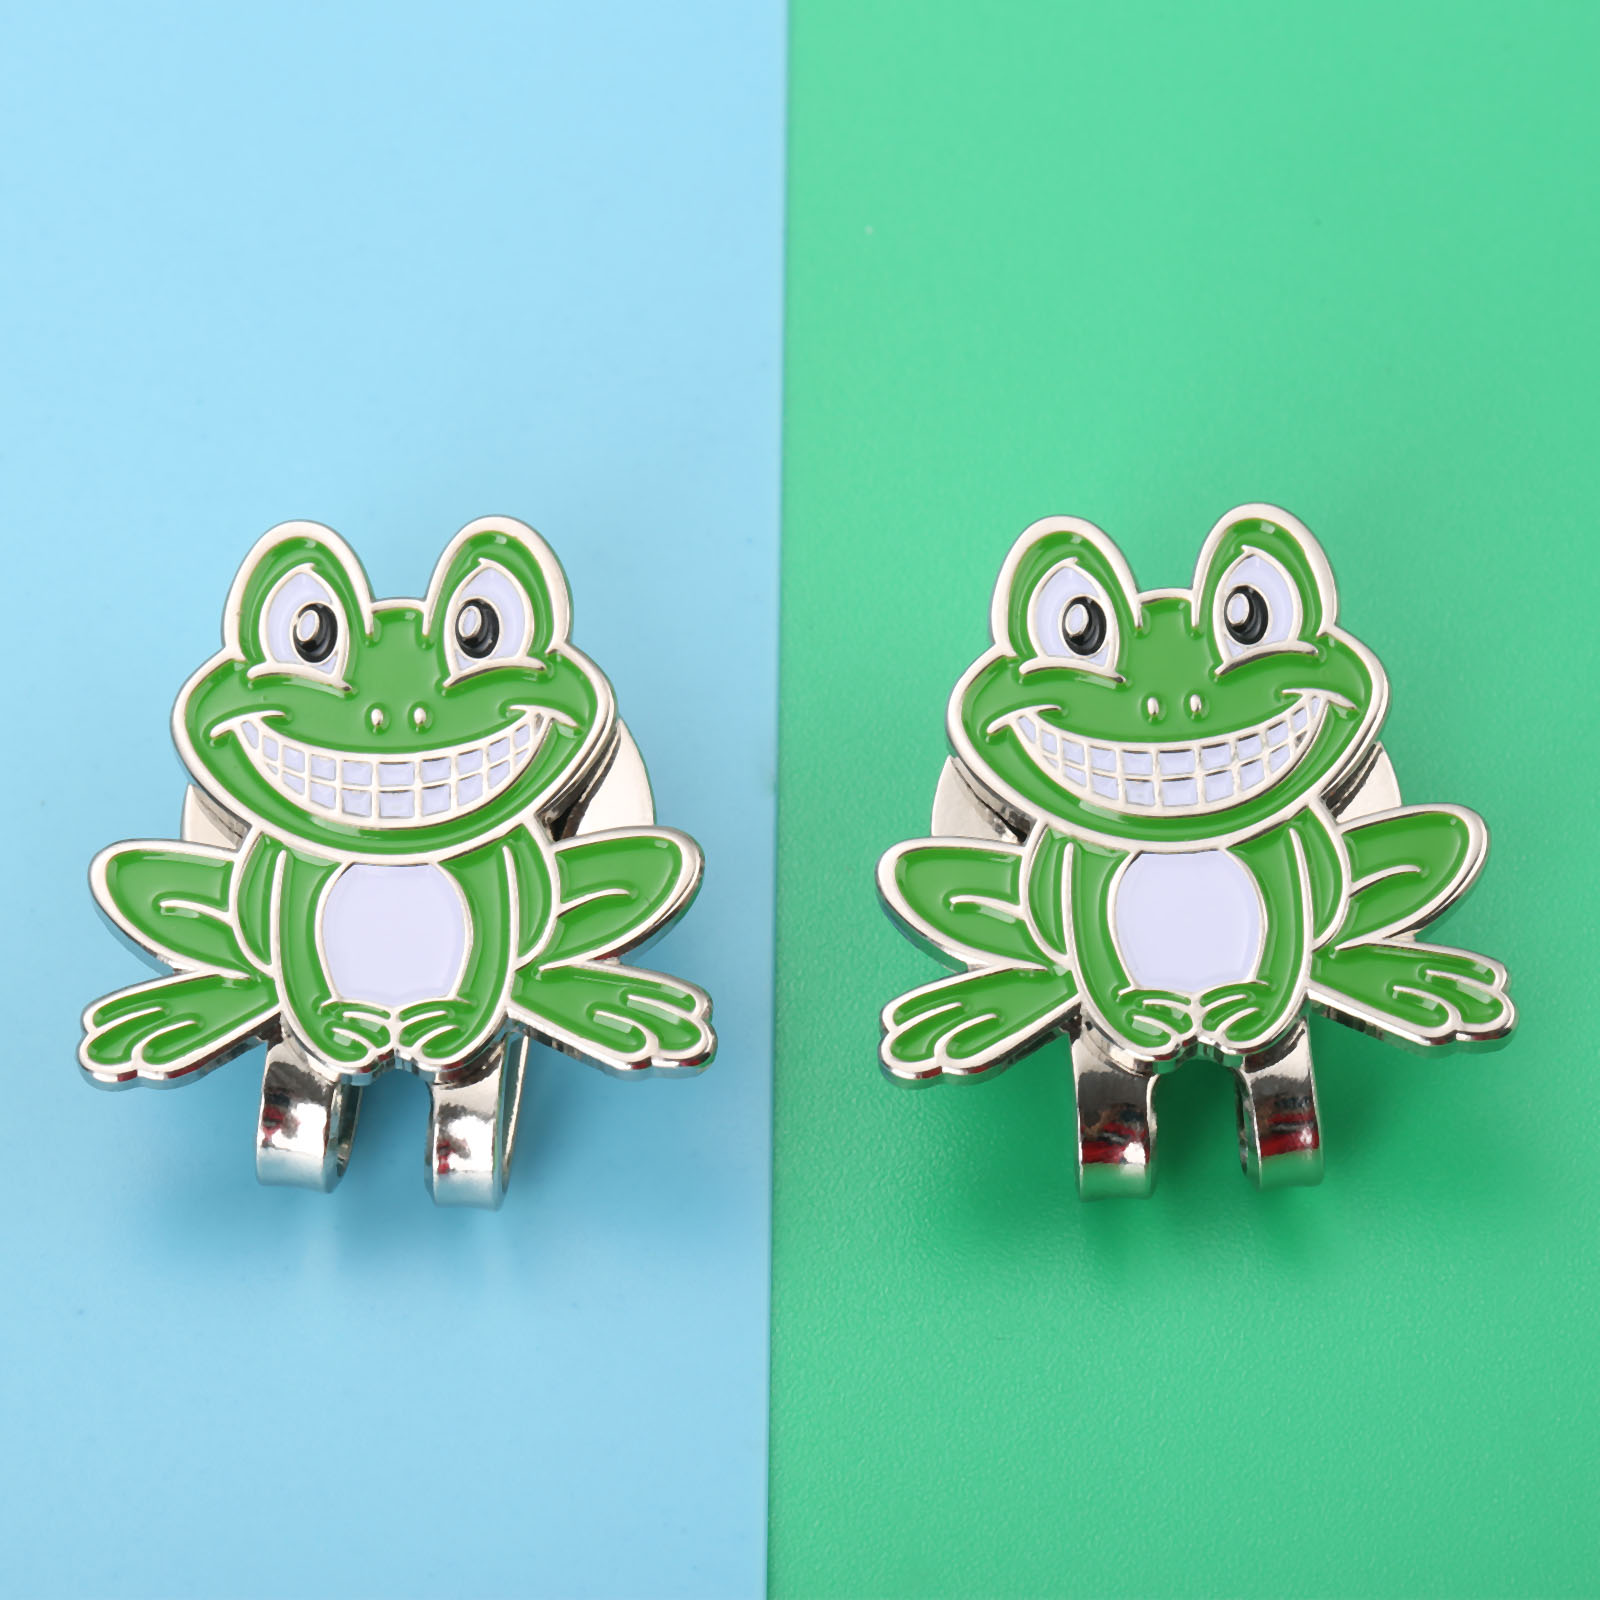 New Arrival Frog Prince Design Golf Ball Marker with Magnetic Golf Cap Visor Clip Alloy Professional Hat Decoration for Golfers